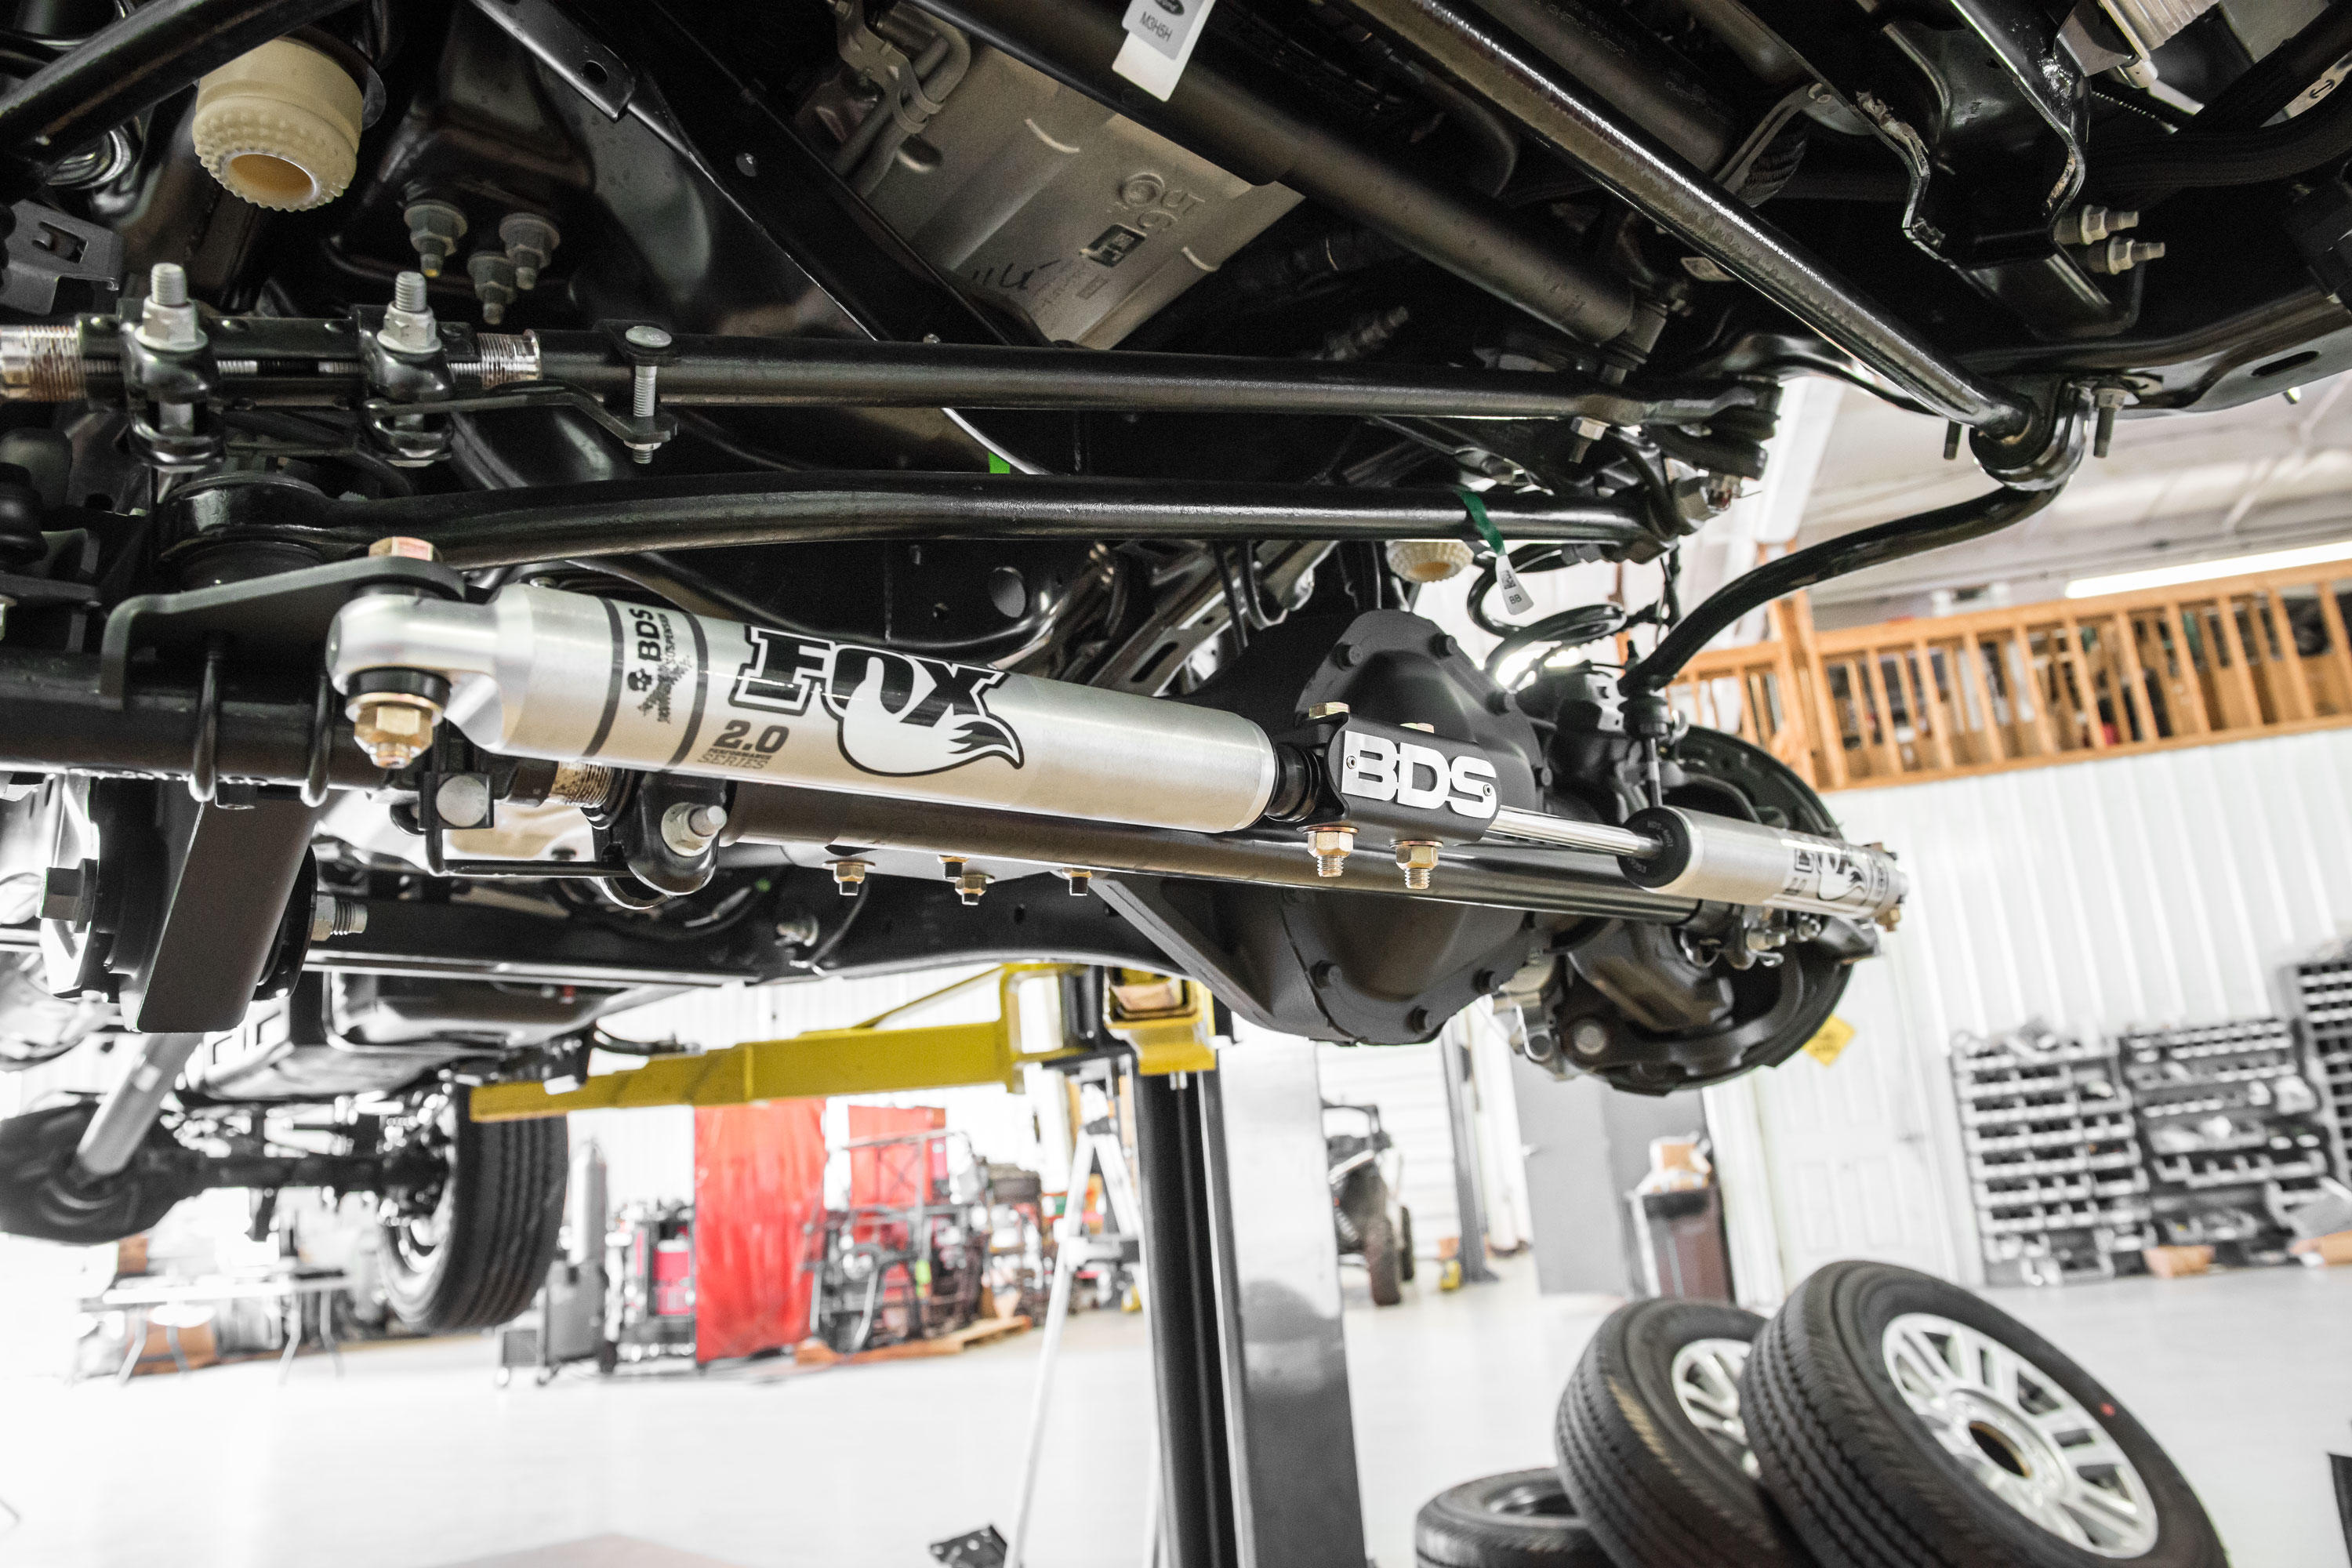 Bds New Product Announcement 285 2017 Super Duty Dual Stabilizer. 2017 Super Duty Bds Dual Steering Stabilizer Kit. Ford. Ford Super Duty Parts Diagram Steering Stabalizer Bar At Scoala.co